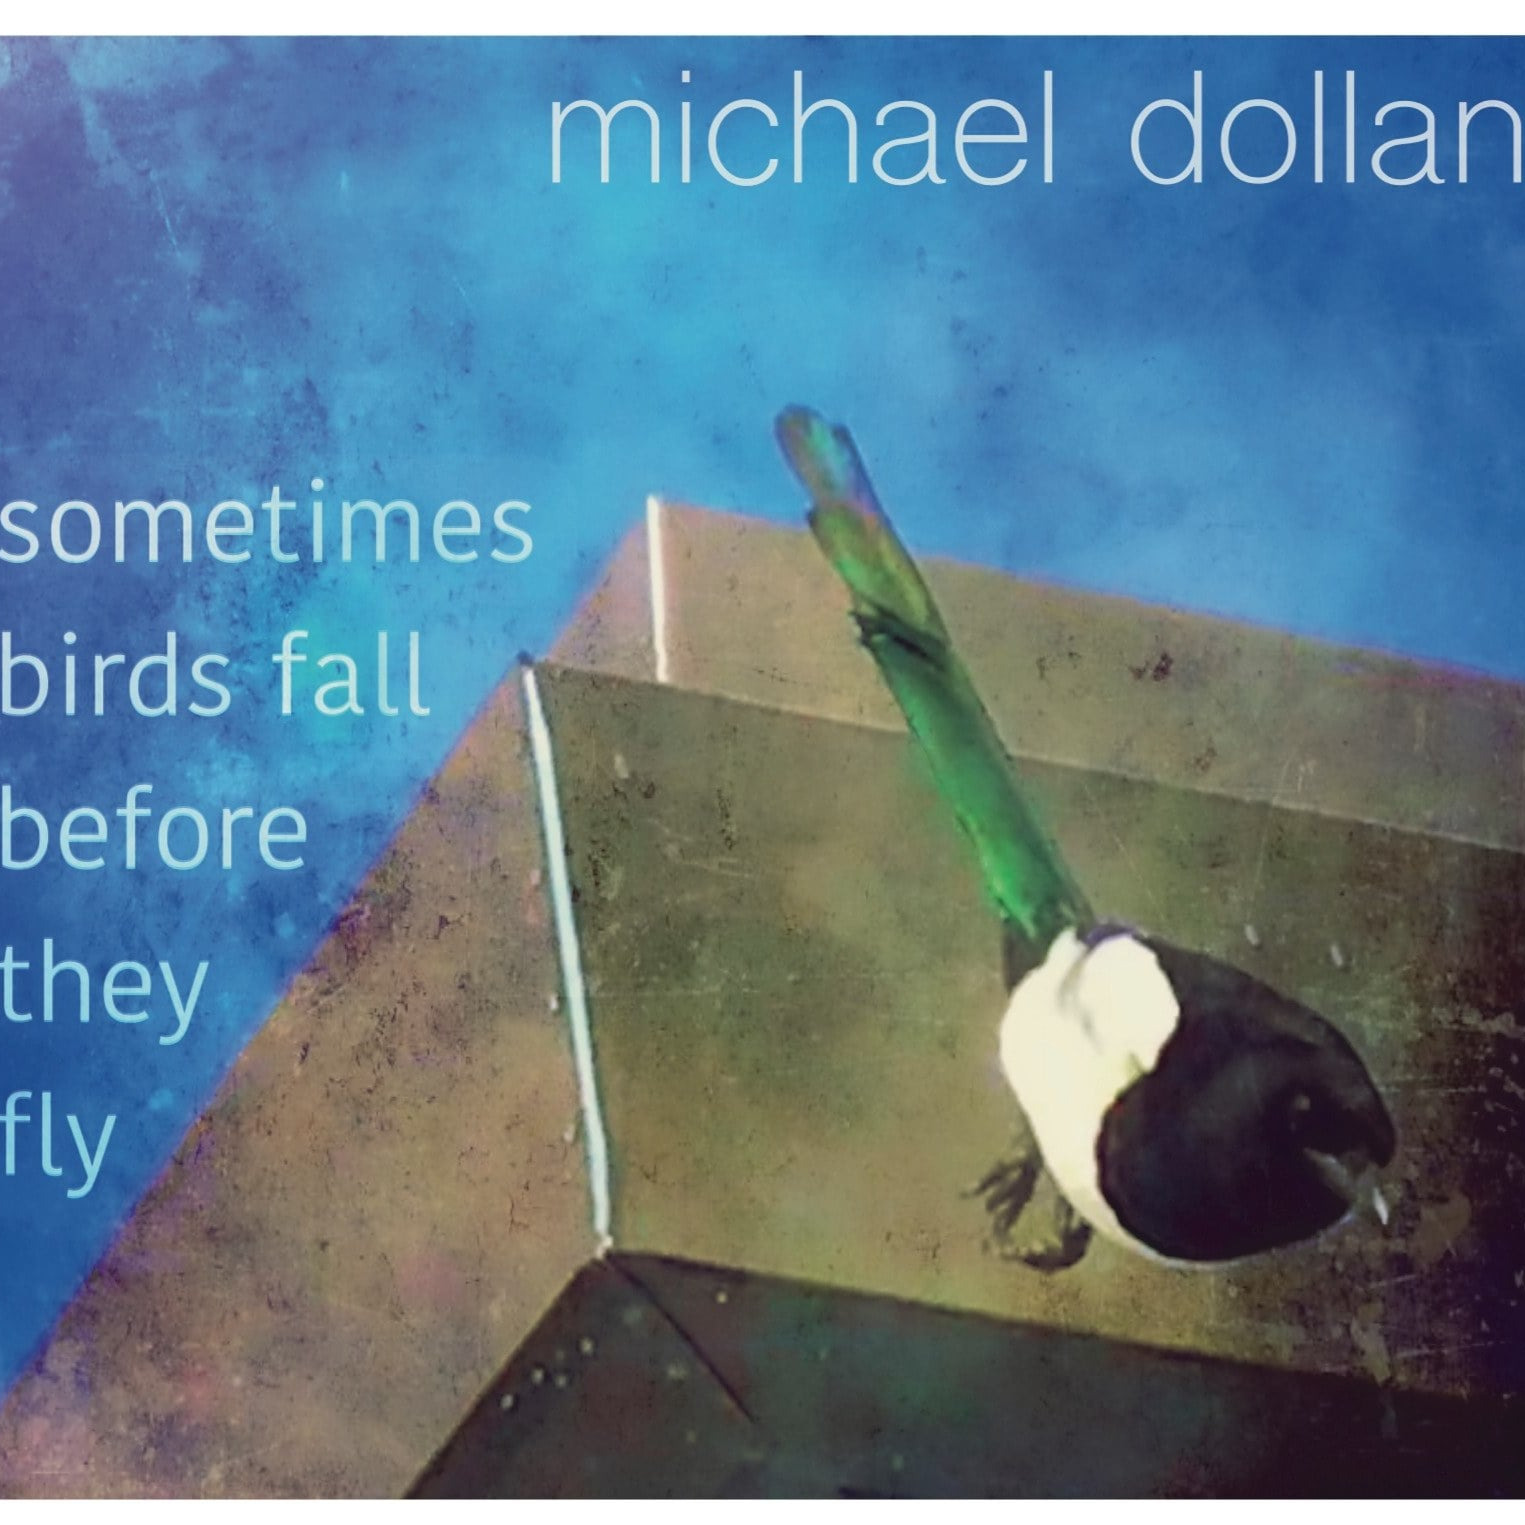 michael dollan music EP - sometimes birds fall before they fly  Link Thumbnail | Linktree